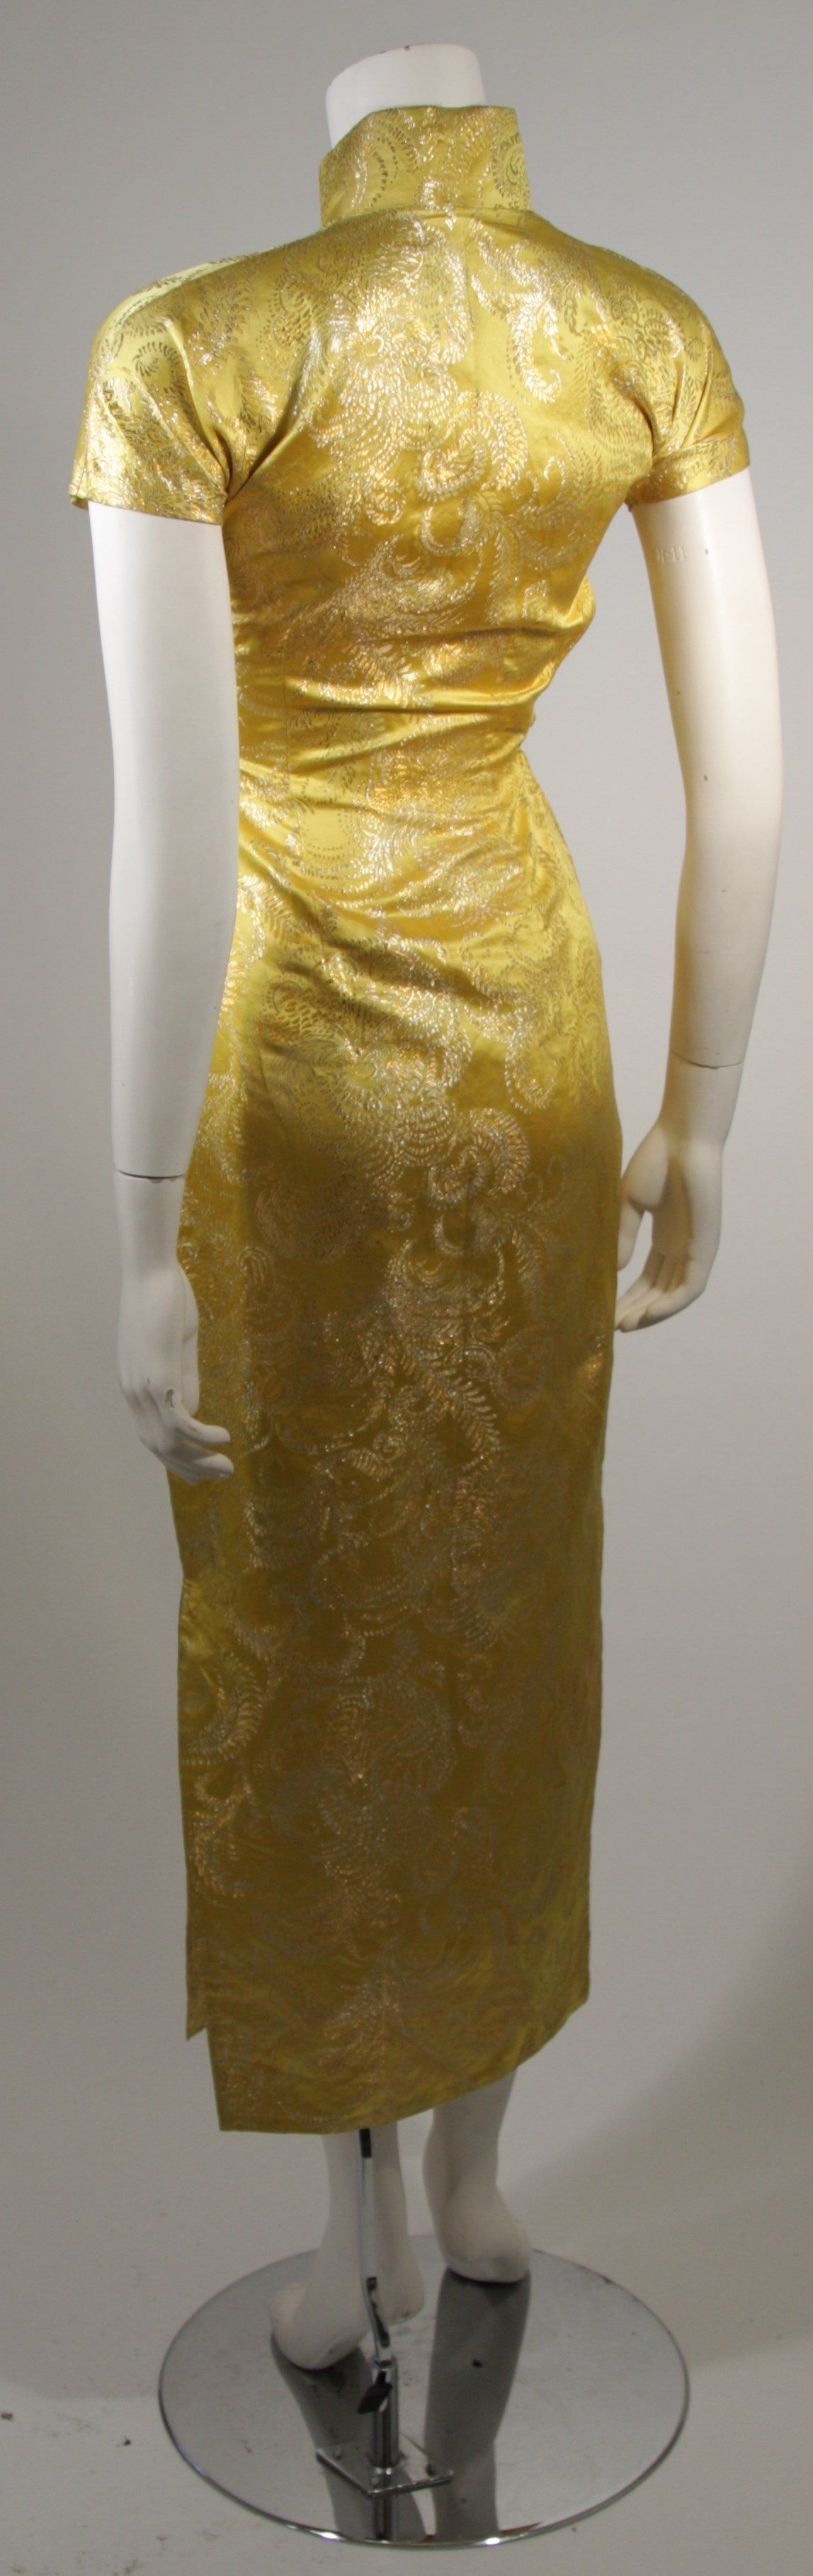 1950's Ornate Silk Brocade Golden Yellow Cheongsam Cocktail Gown  Size XS 6